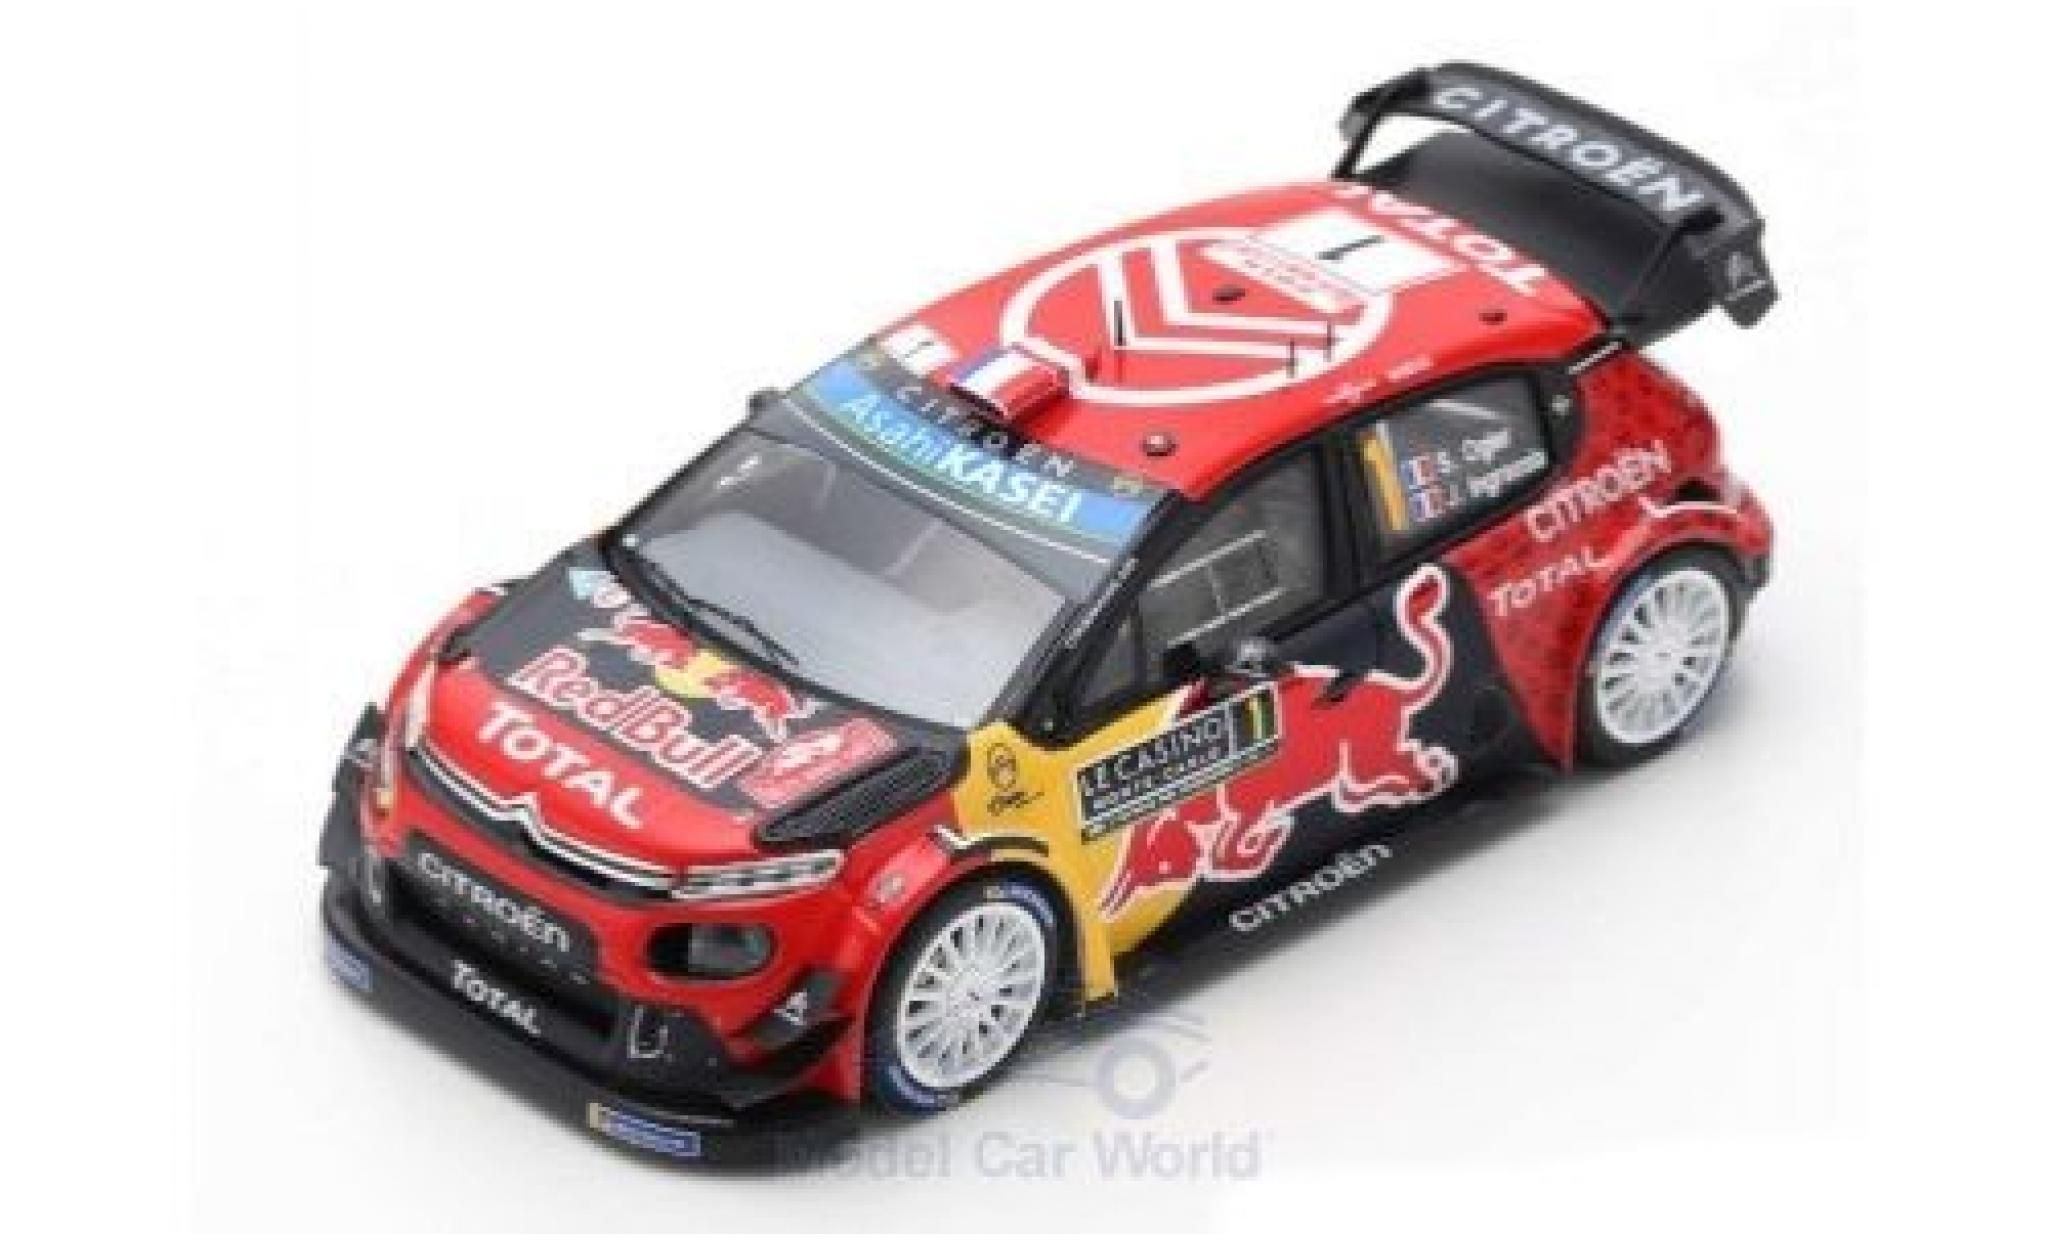 Citroen C3 1/43 Spark WRC No.1 Total WRT Red Bull WRC Rally Monte Carlo 2019 100th victory in WRC by S.Ogier/J.Ingrassia